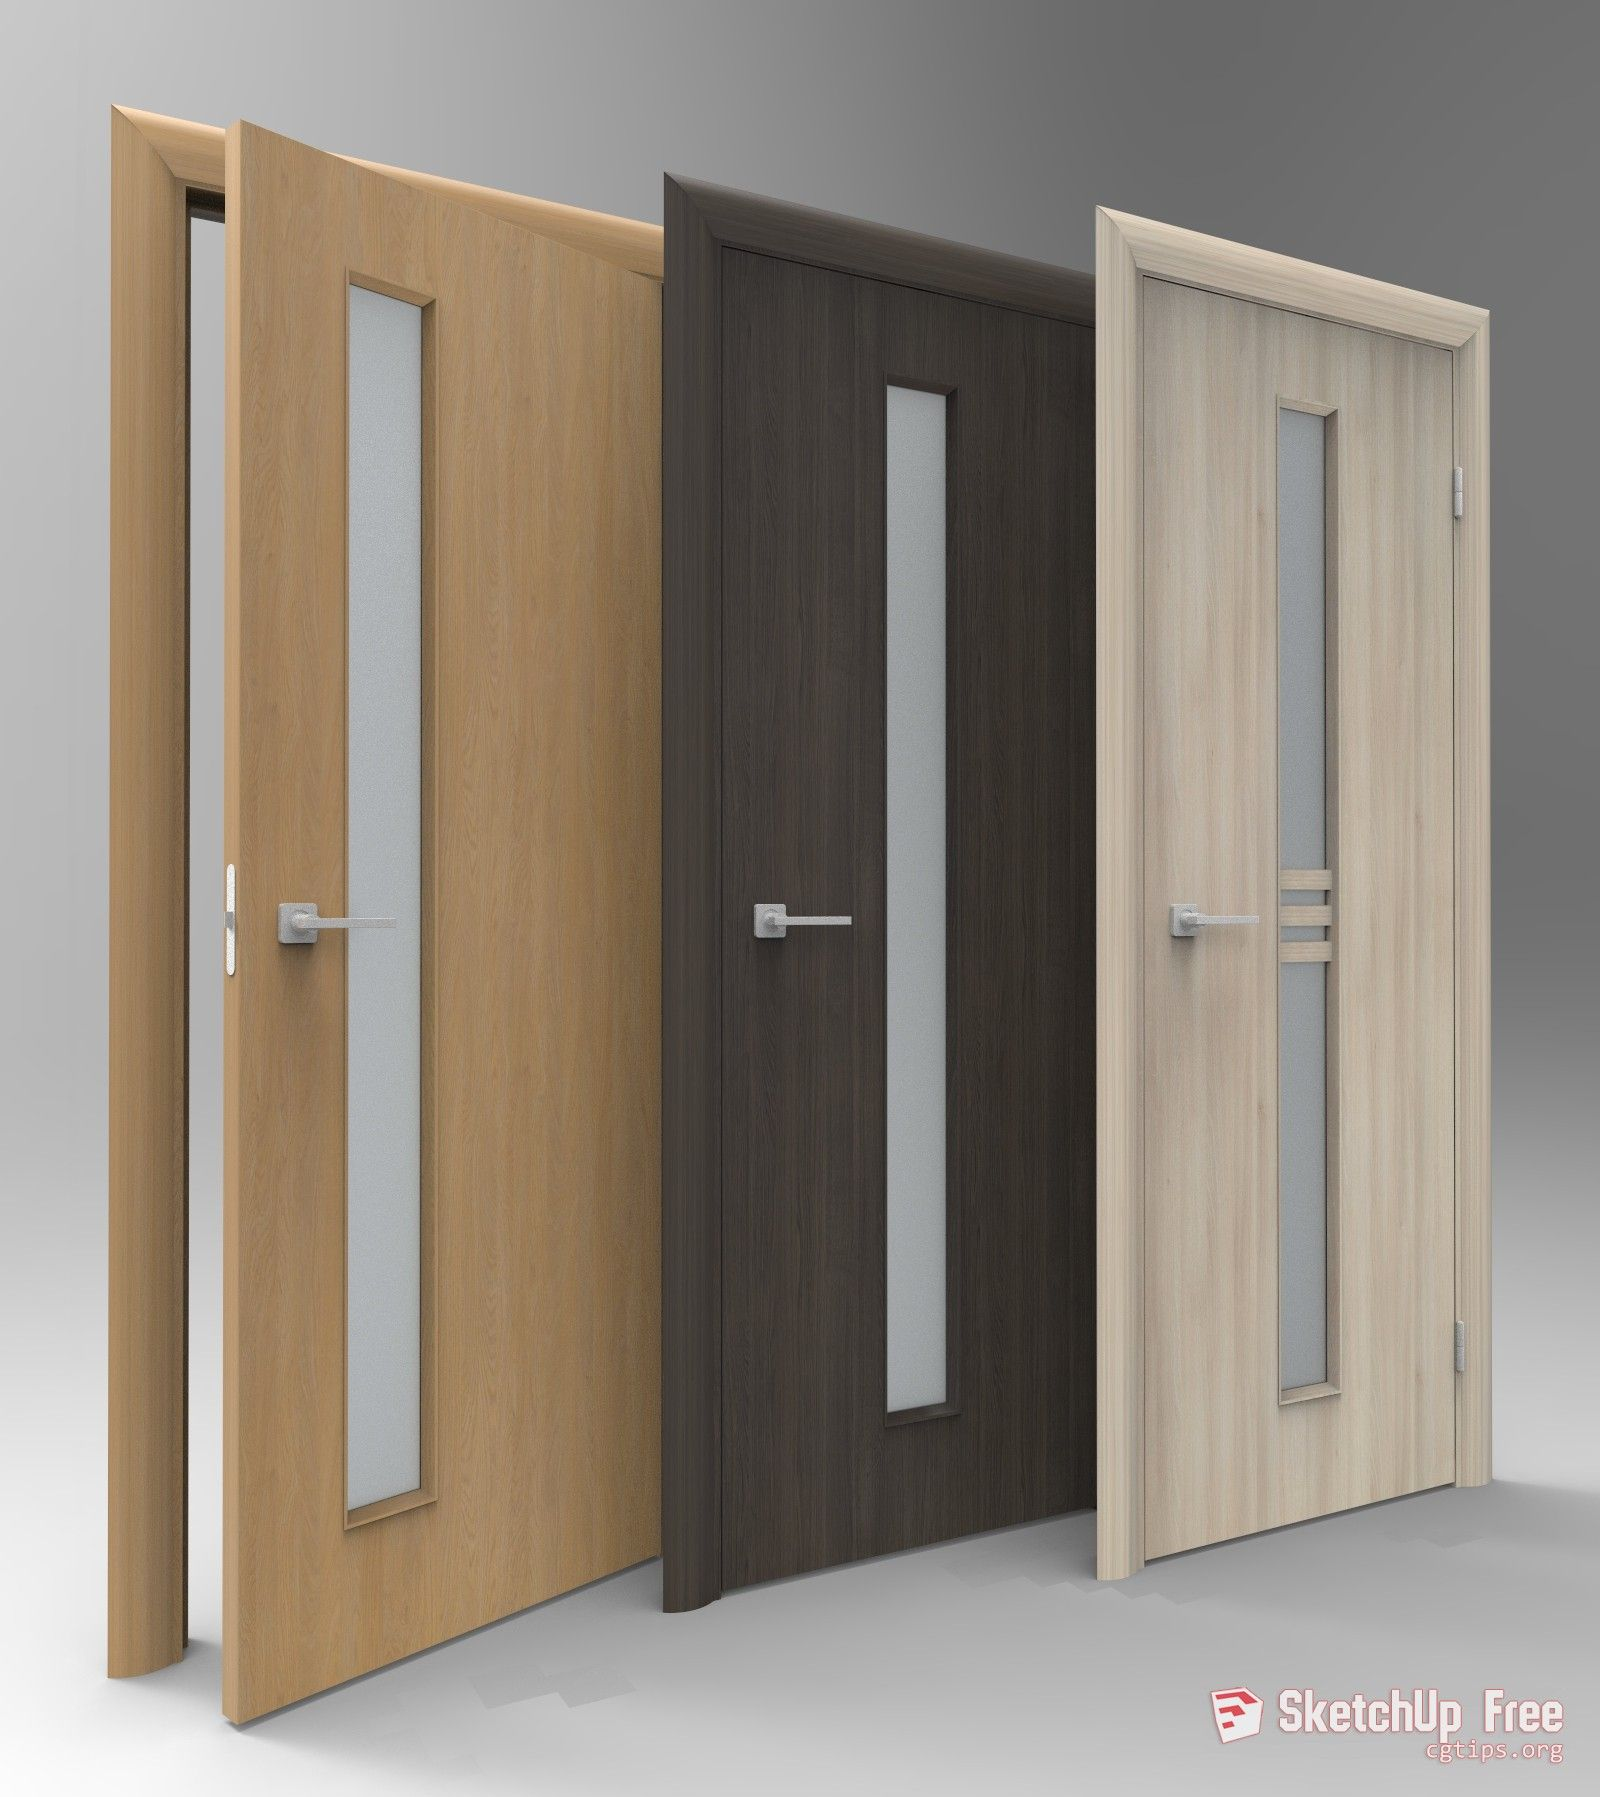 1576 Doors Sketchup Model Free Download